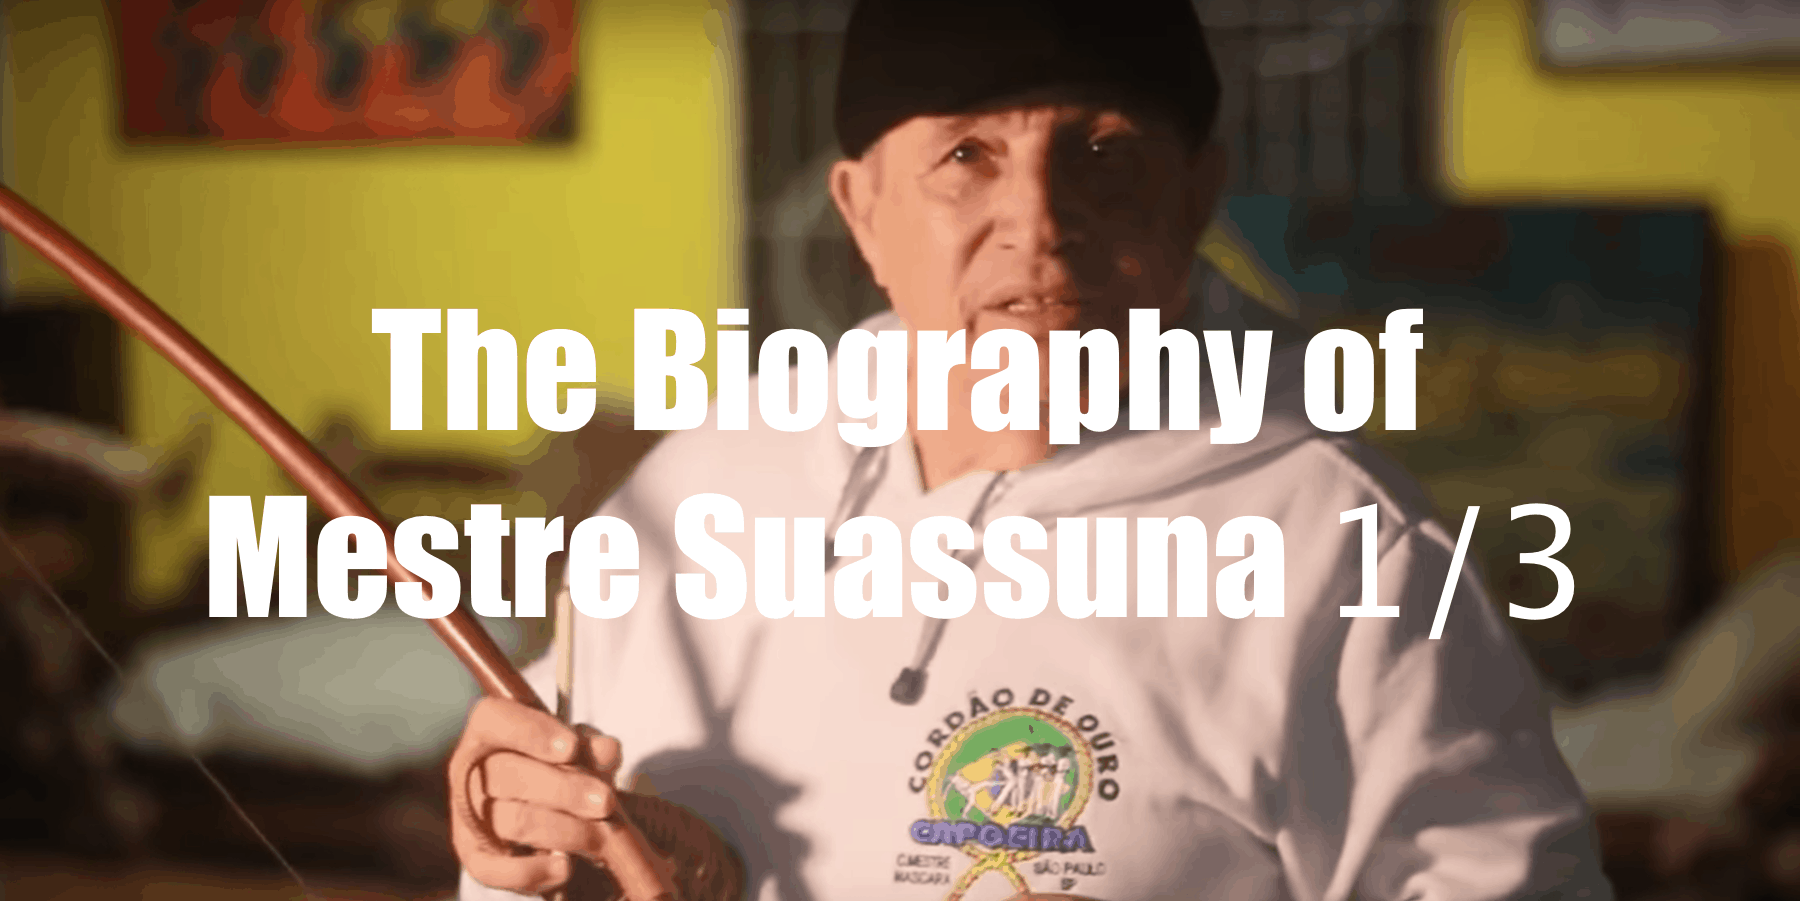 biography of mestre suassuna, biography, mestre suassuna, sao paulo, cdo, cordao de ouro, capoeira capoeira near me, movement culture, capoeira from bahia, brazil